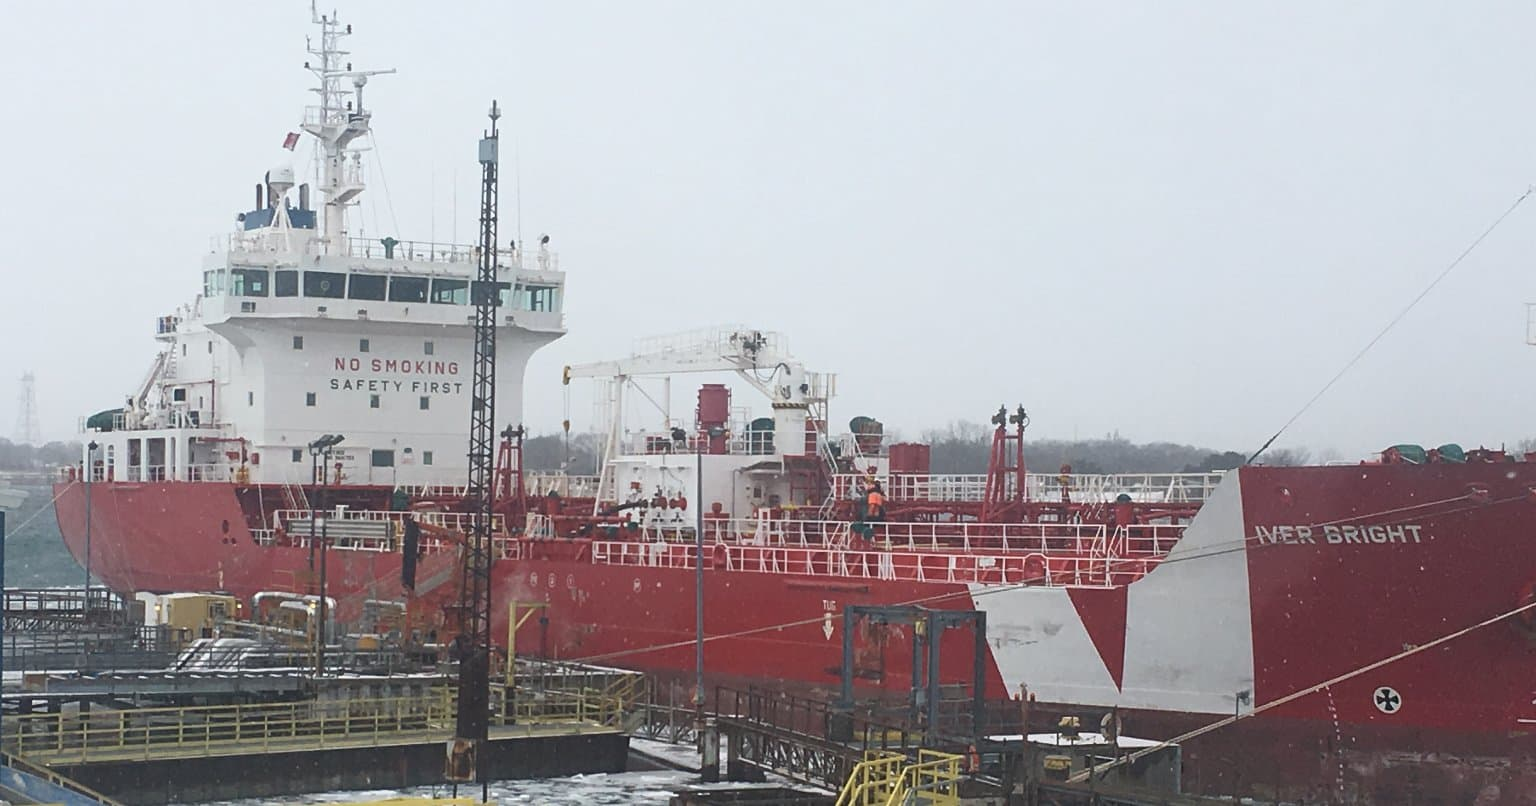 Our Iver Bright ship in Sarnia in winter